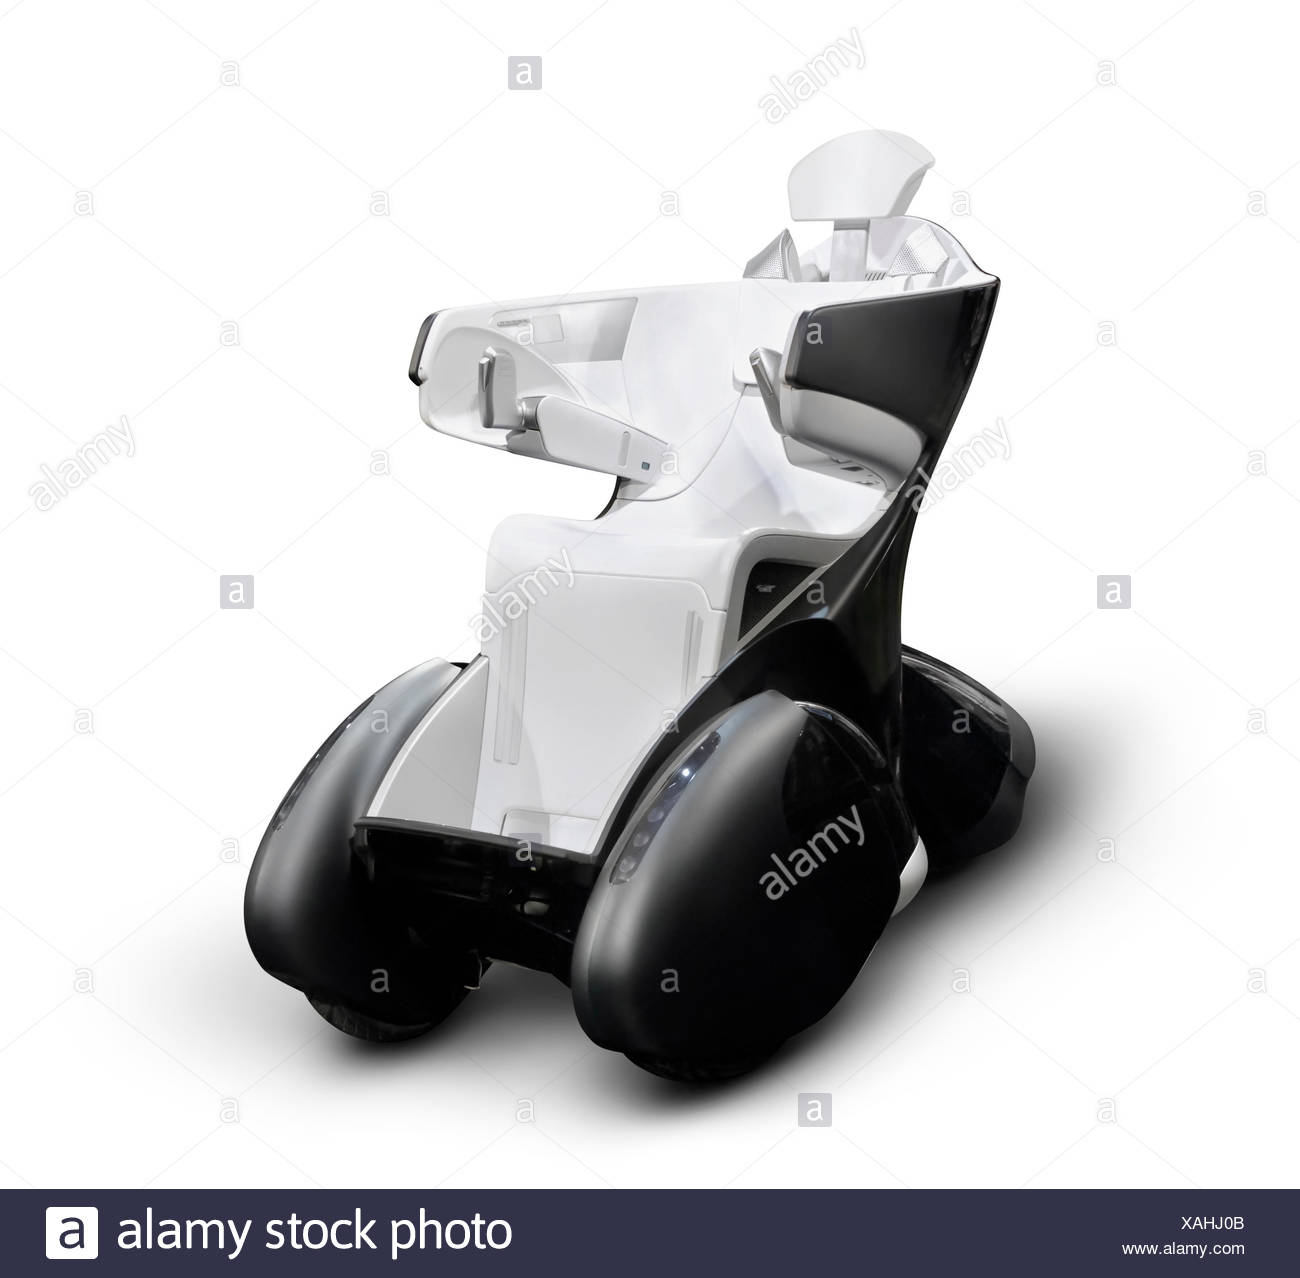 Toyota Motor Corp i-REAL motorized high-tech wheelchair - Stock Image